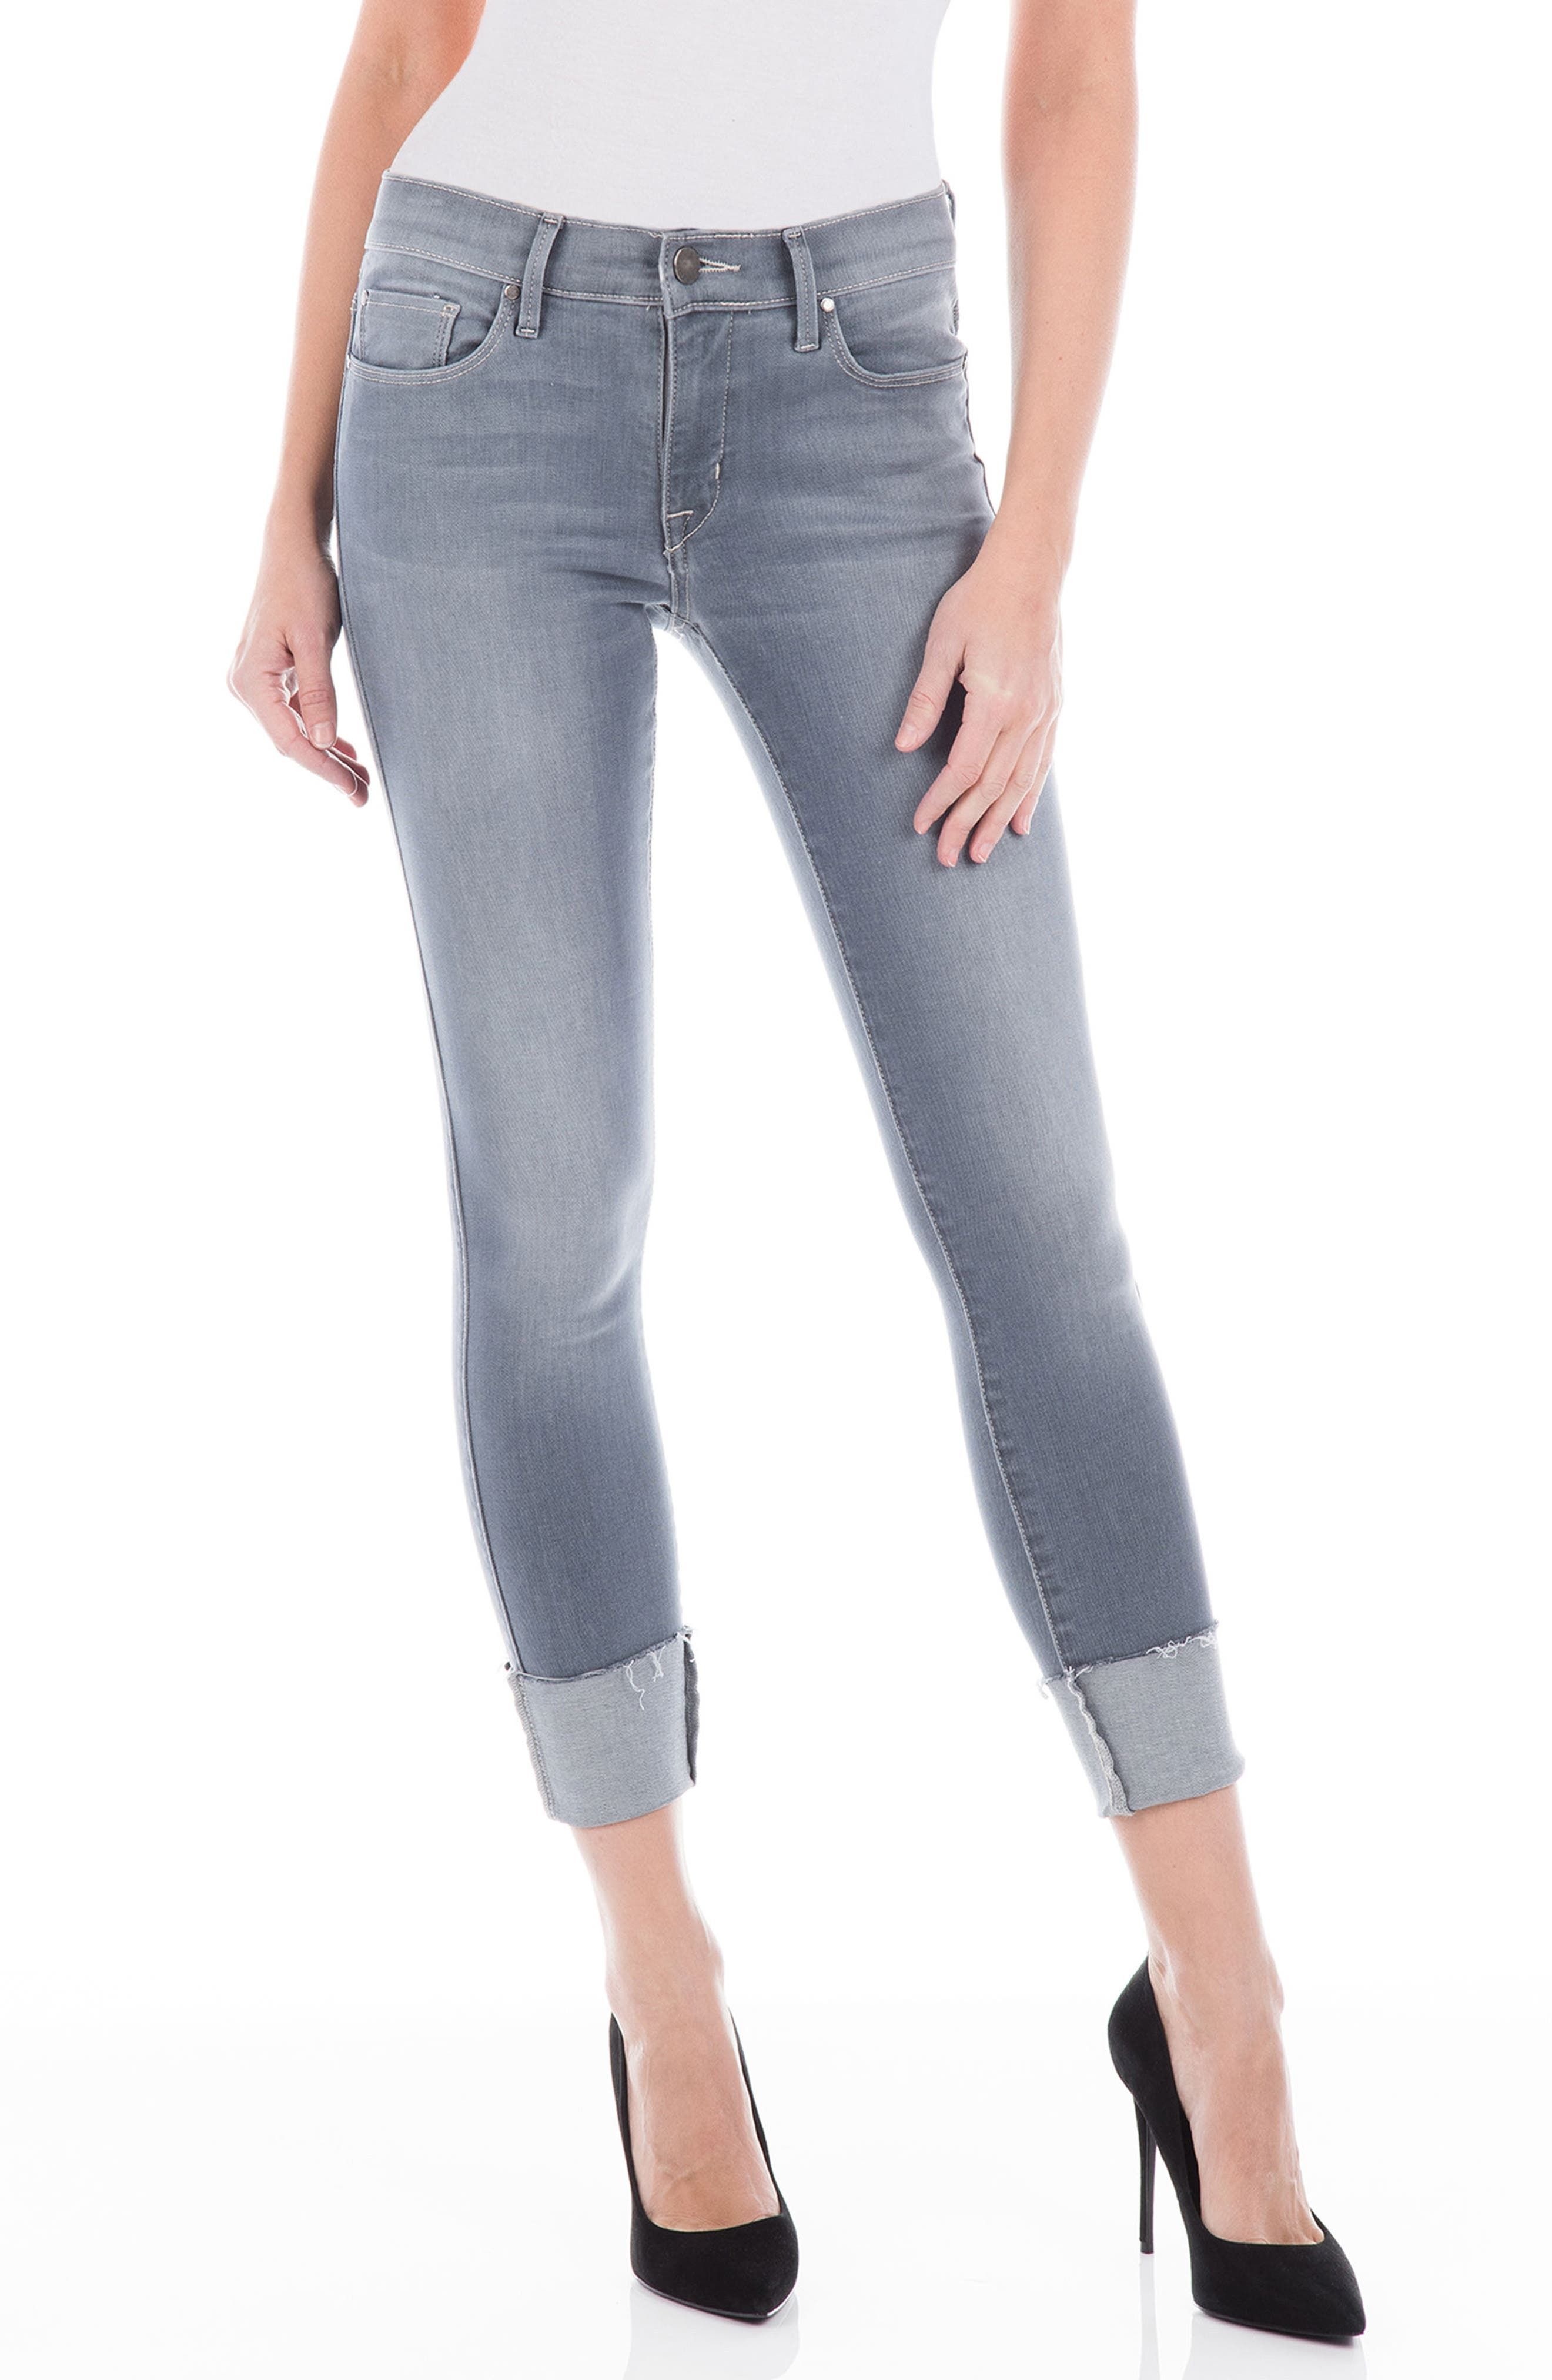 Belvedere Crop Skinny Jeans,                             Main thumbnail 1, color,                             CHROME